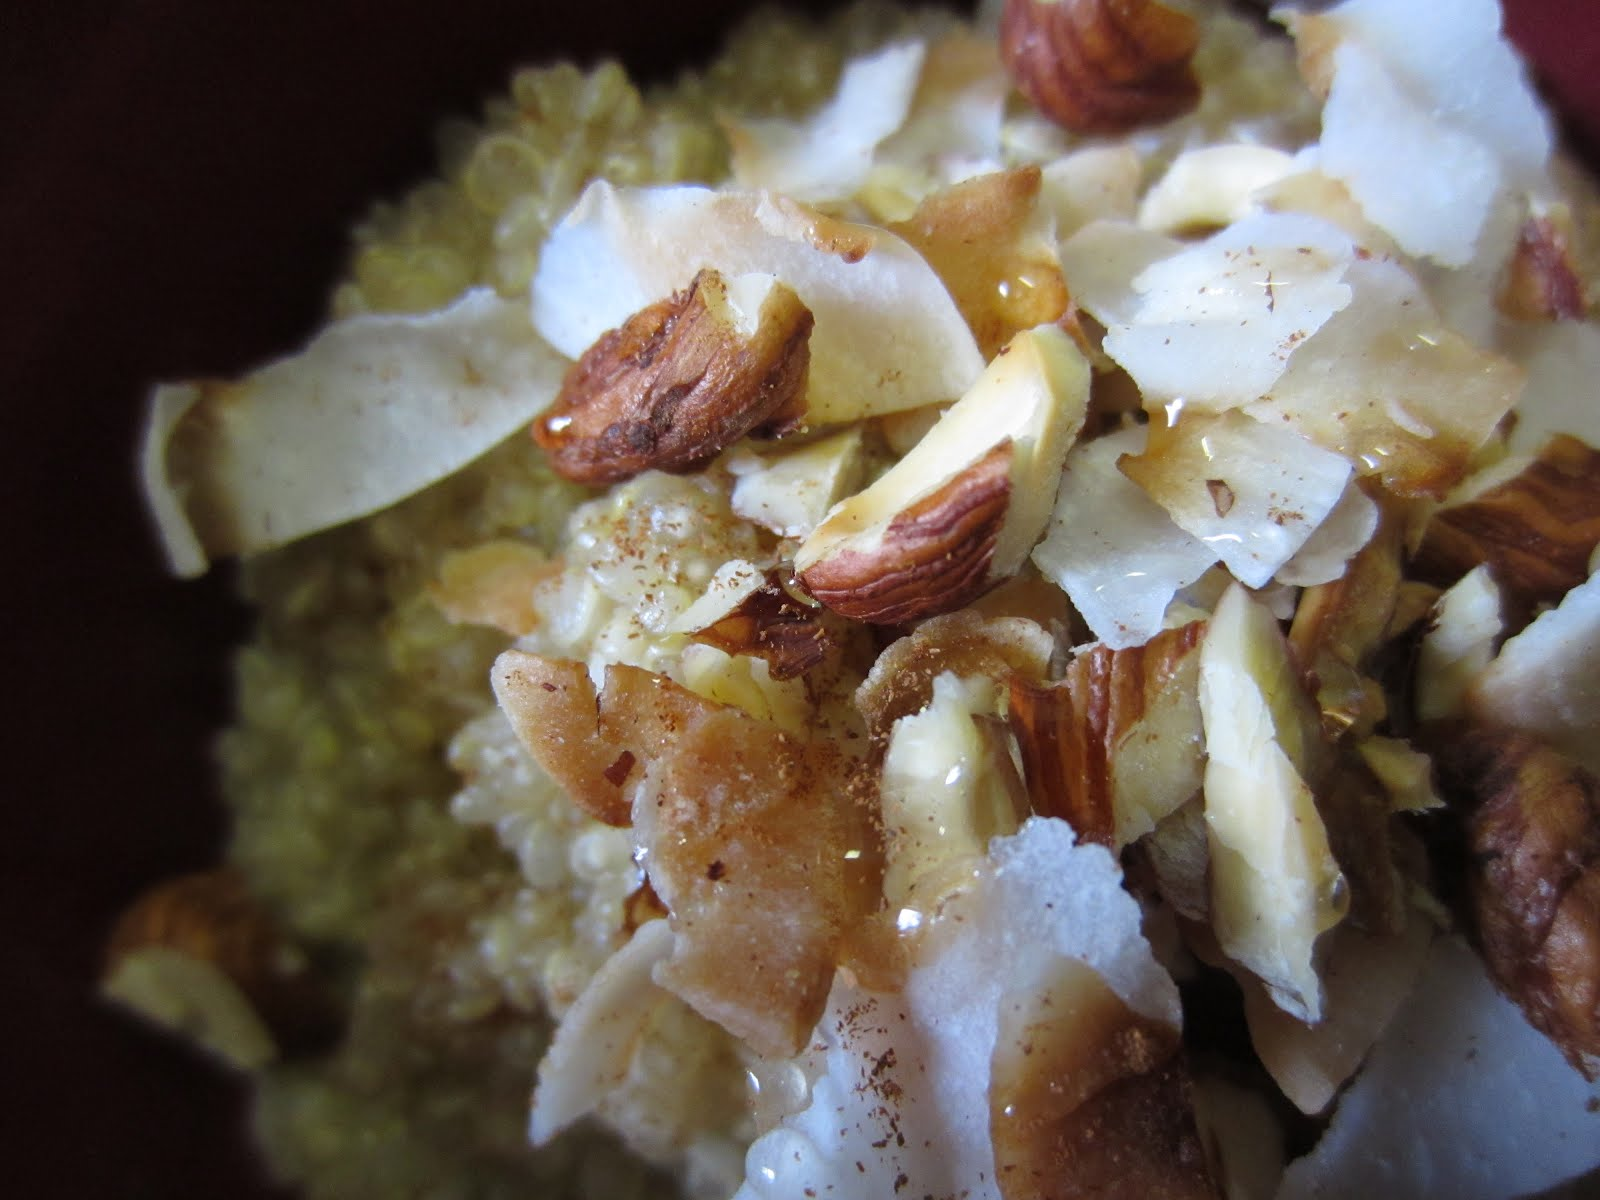 Warm and Nutty Cinnamon and Coconut Quinoa adapted from 101 Cookbooks